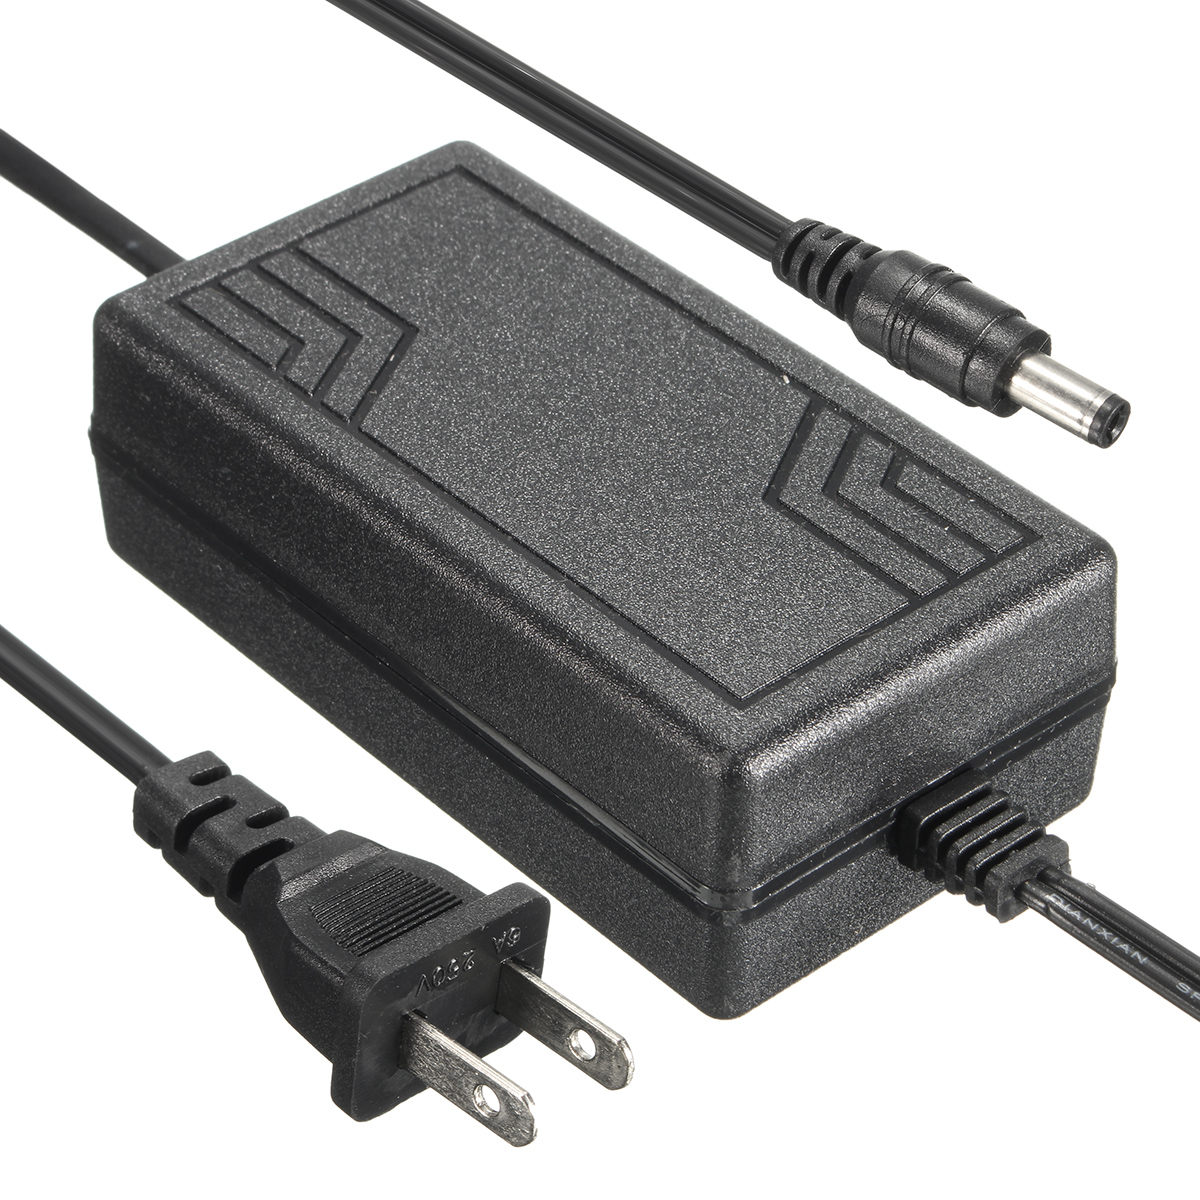 24V 2A AC to DC Switching Adapter Power Supply for LED Strip Light CCTV 5.5mm x 2.5mm